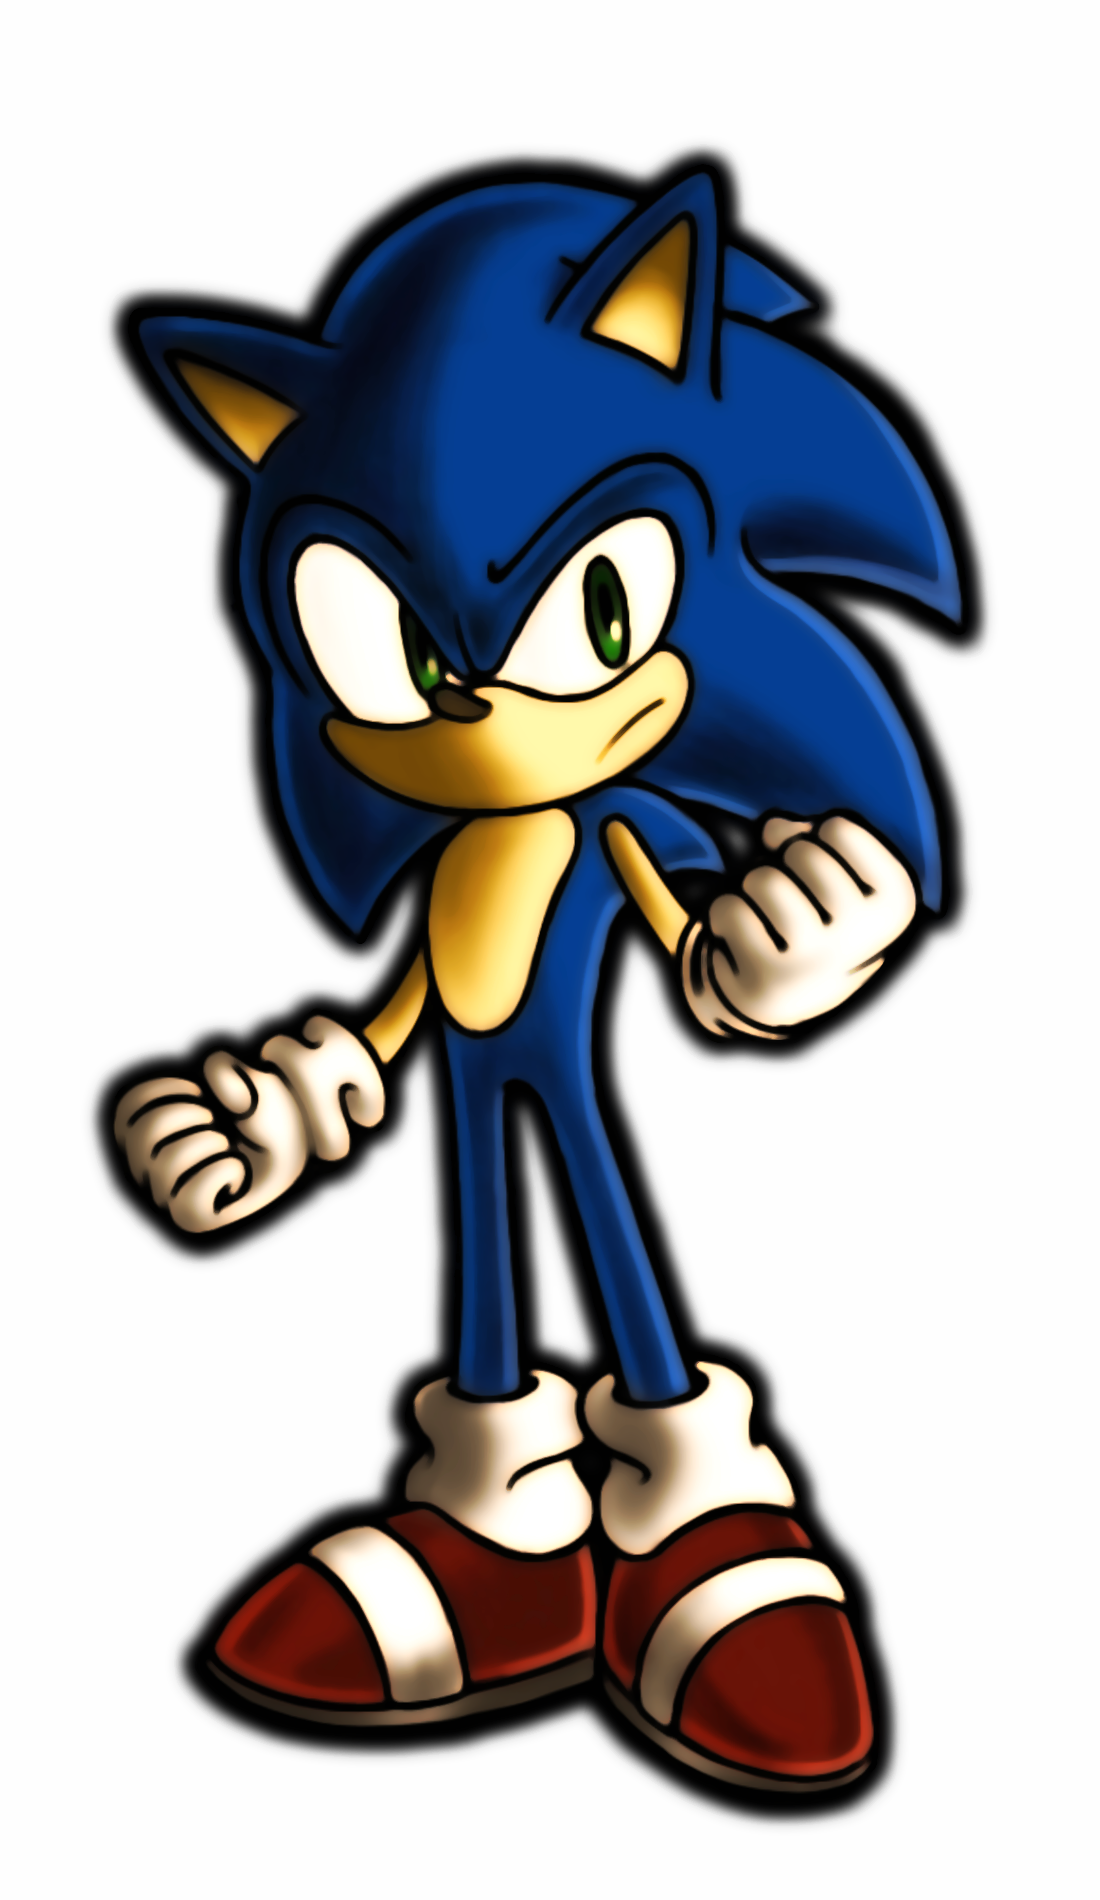 FotM_Sonic_Idle.png by Zack113